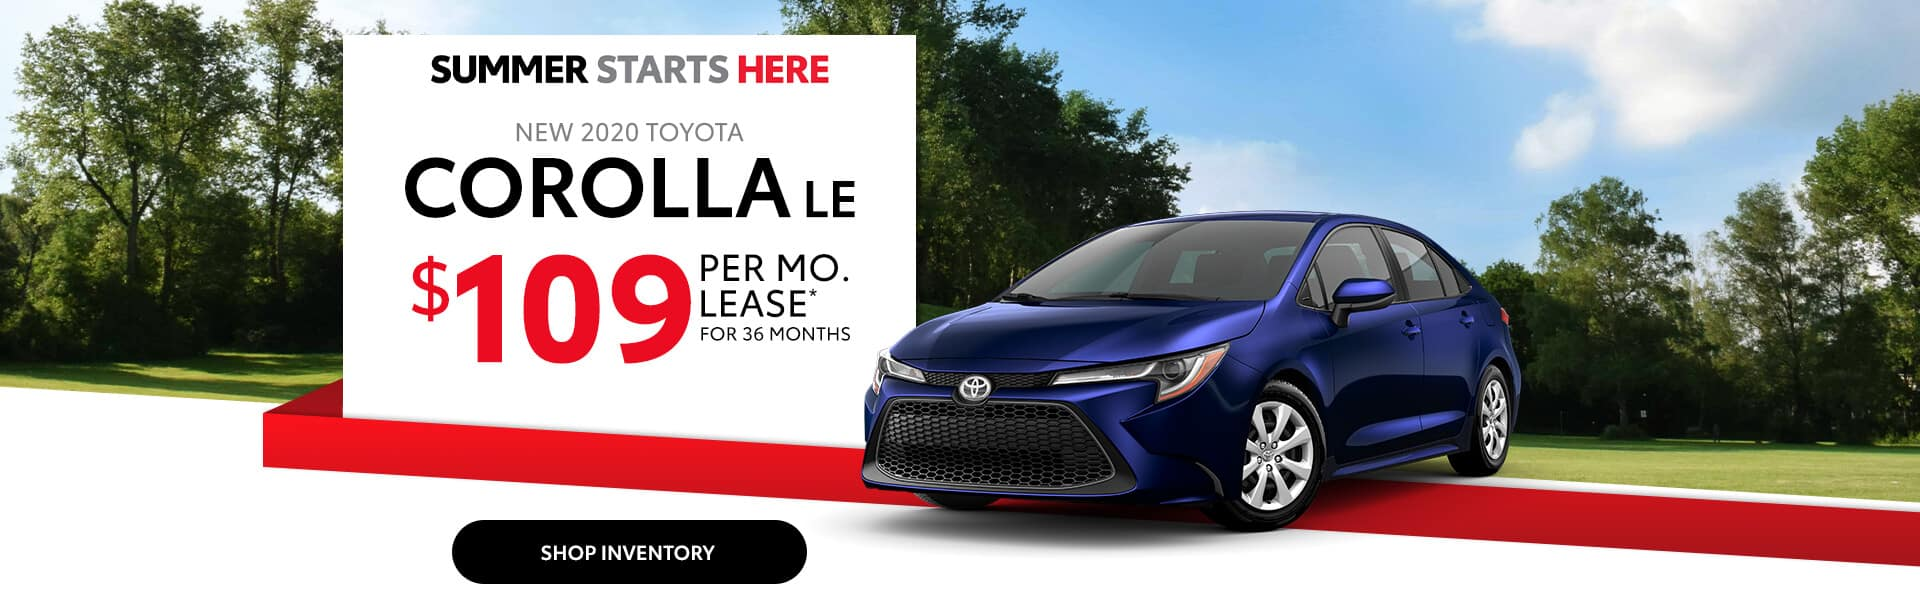 2020 Toyota Corolla Lease Special near Greenwood, Indiana.